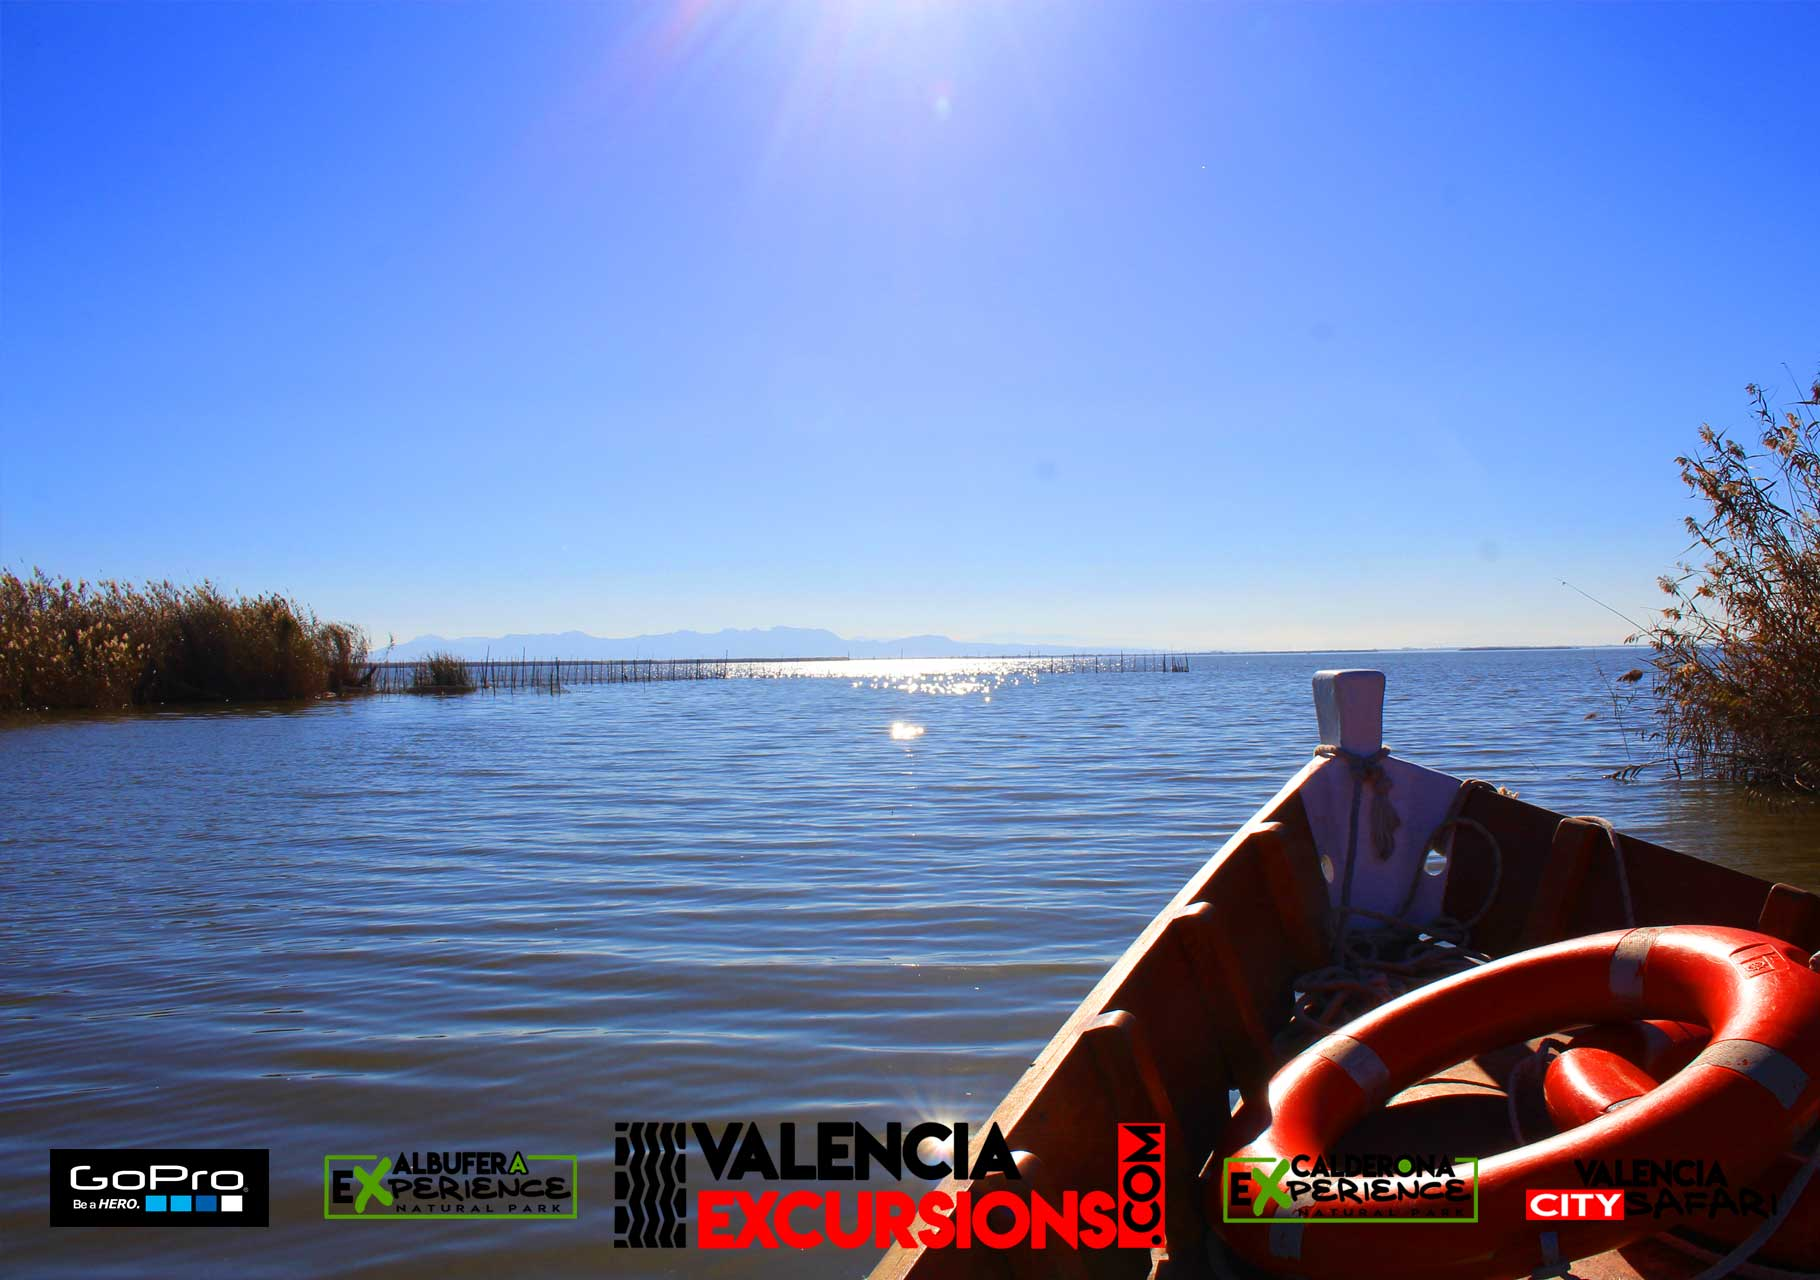 Albufera de Valencia Boat trip included with Albufera Experience jeep tour in Valencia www.valenciaexcursions.com